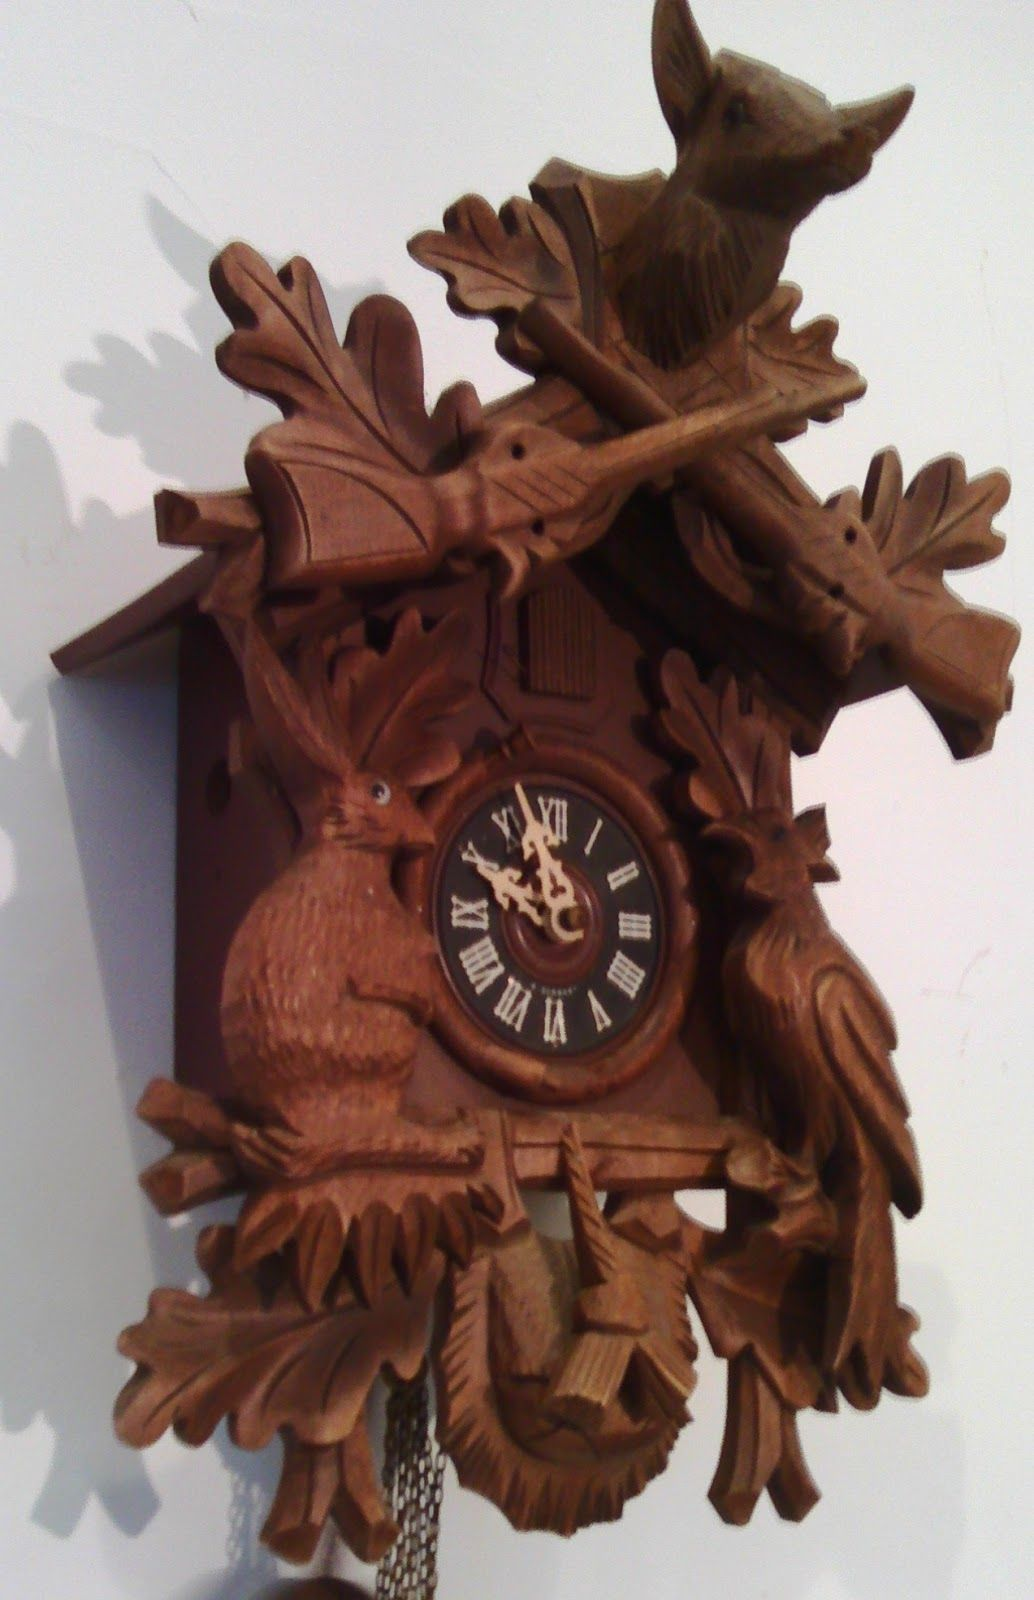 Coucou Horloge Ancien Didoulabrocante Pendule Coucou Ancienne Forêt